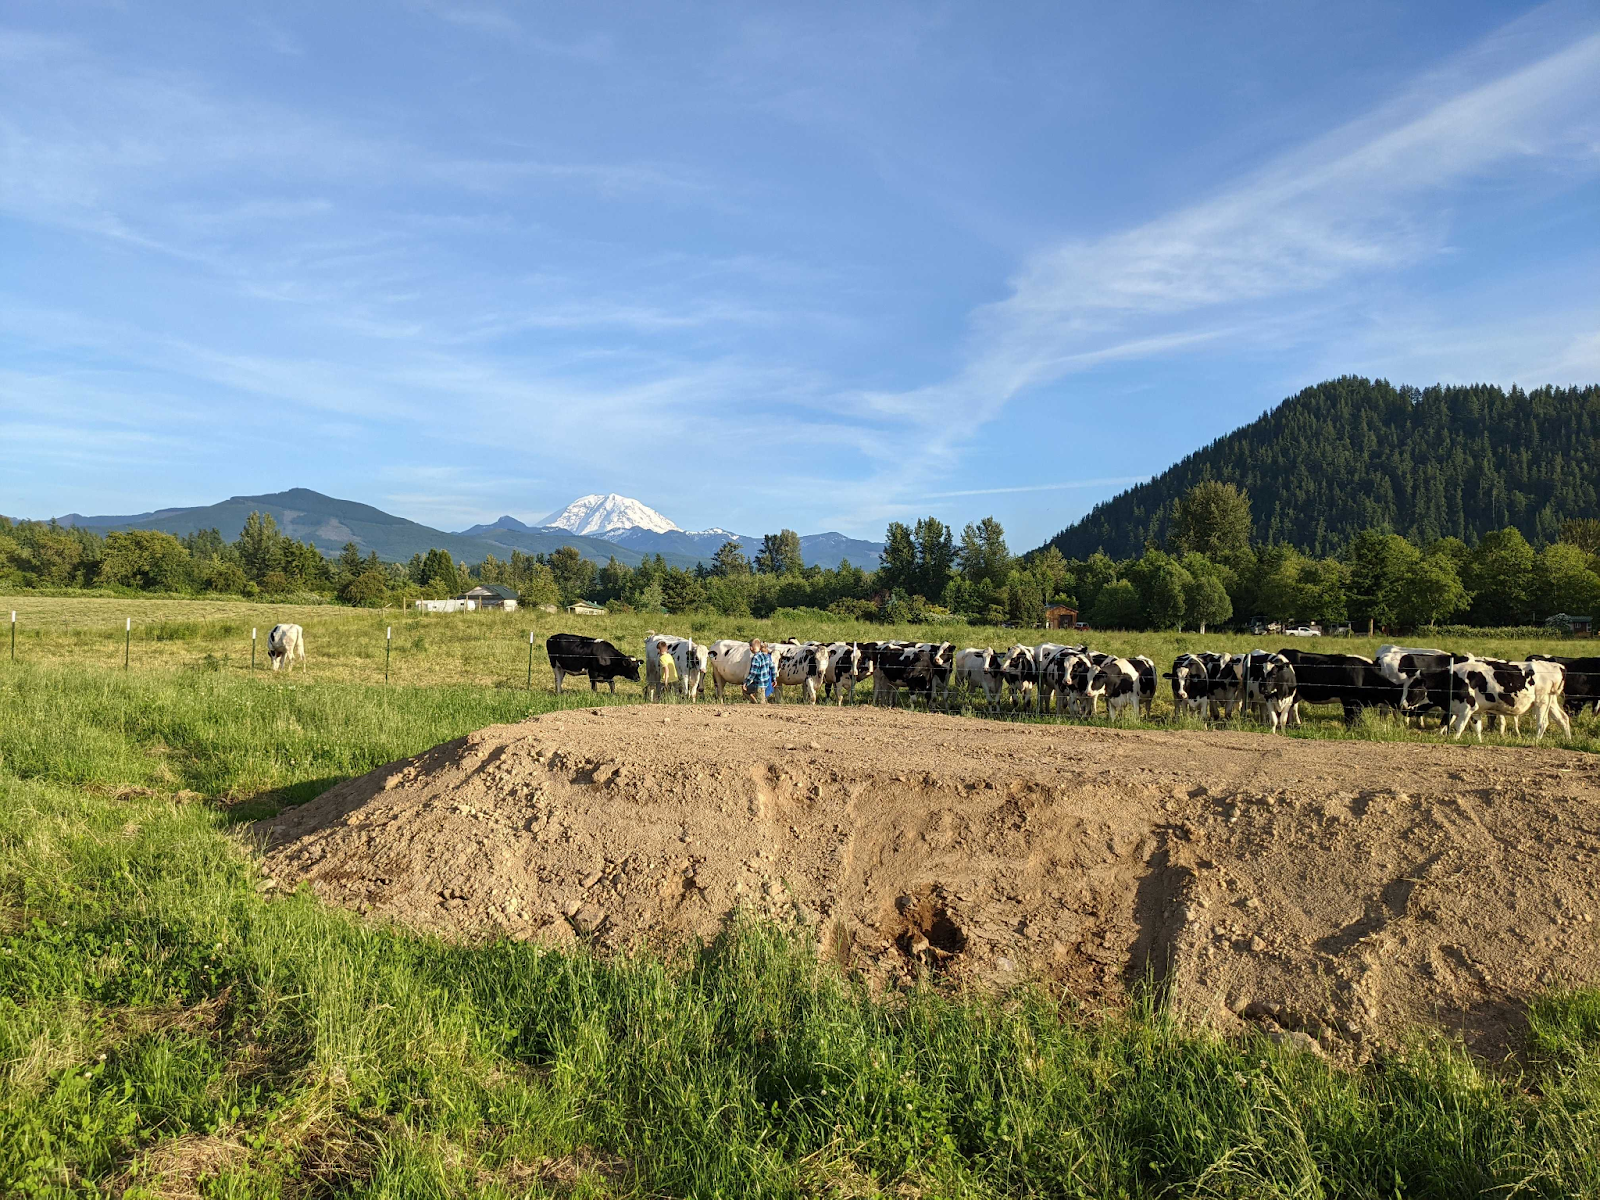 Boys in a field playing in a mound of dirt near cows.